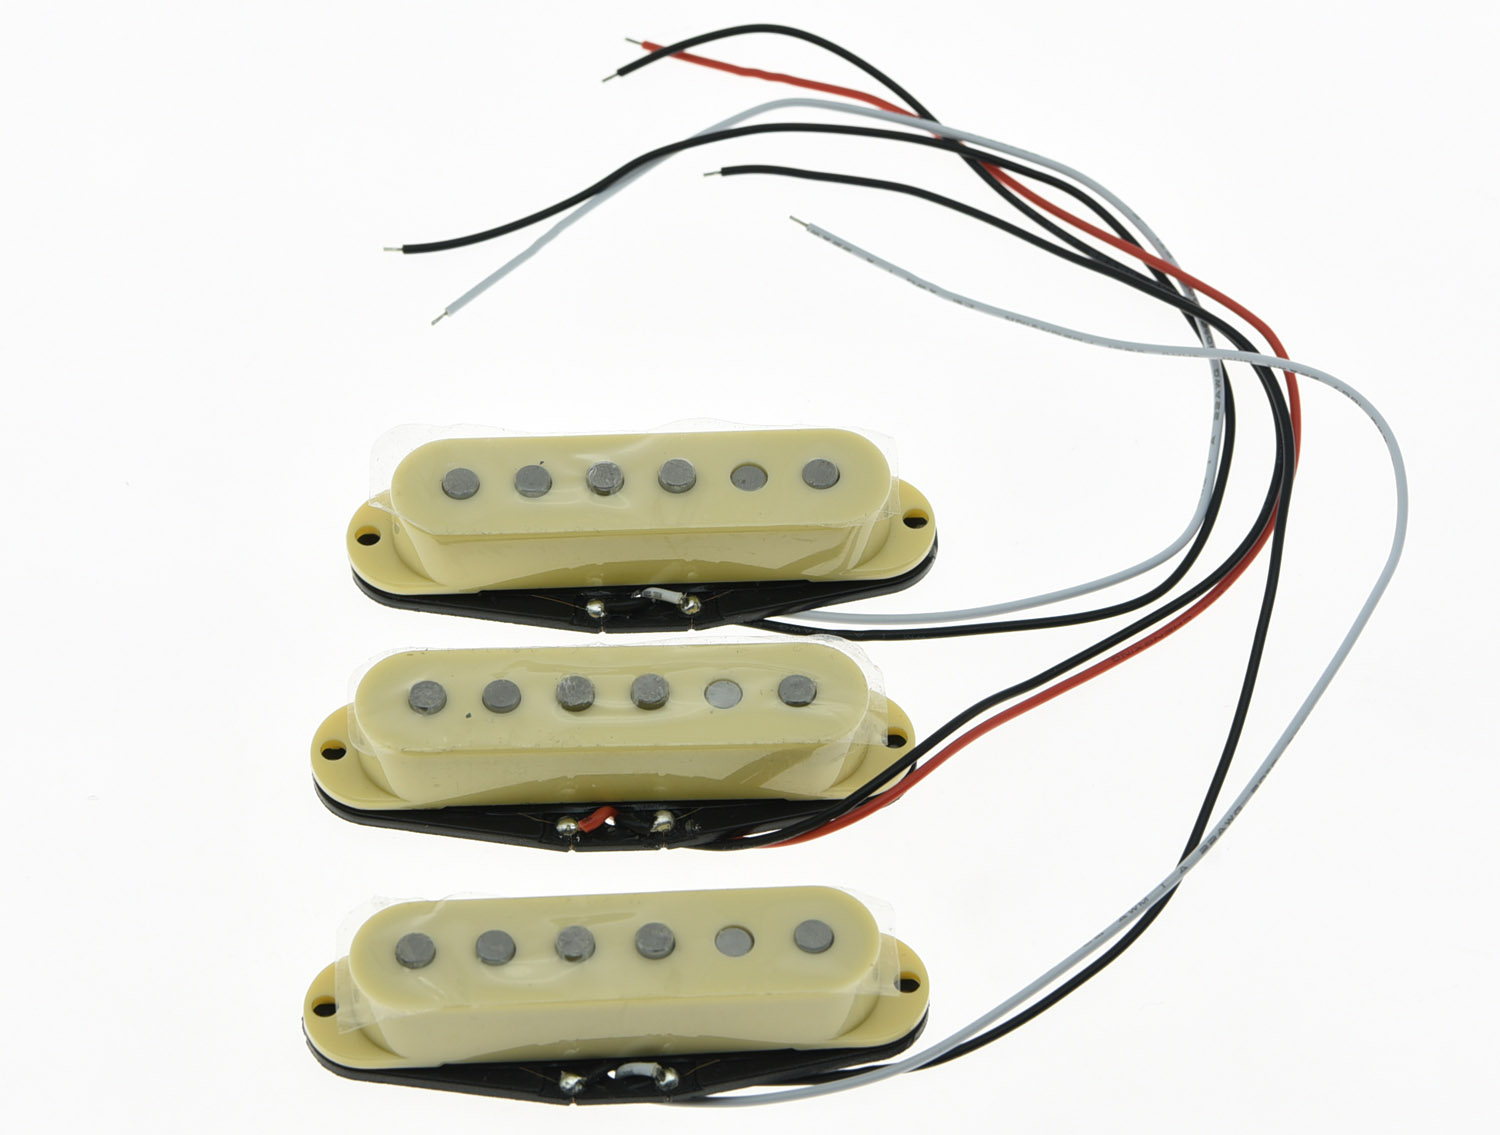 KAISH 3x Cream Alnico 5 Single Coil Pickups ST Strat SSS Pickup Set single coil pickup cover 1 volume 2 tone knobs switch tip for strat guitar replacement ivory 10 set